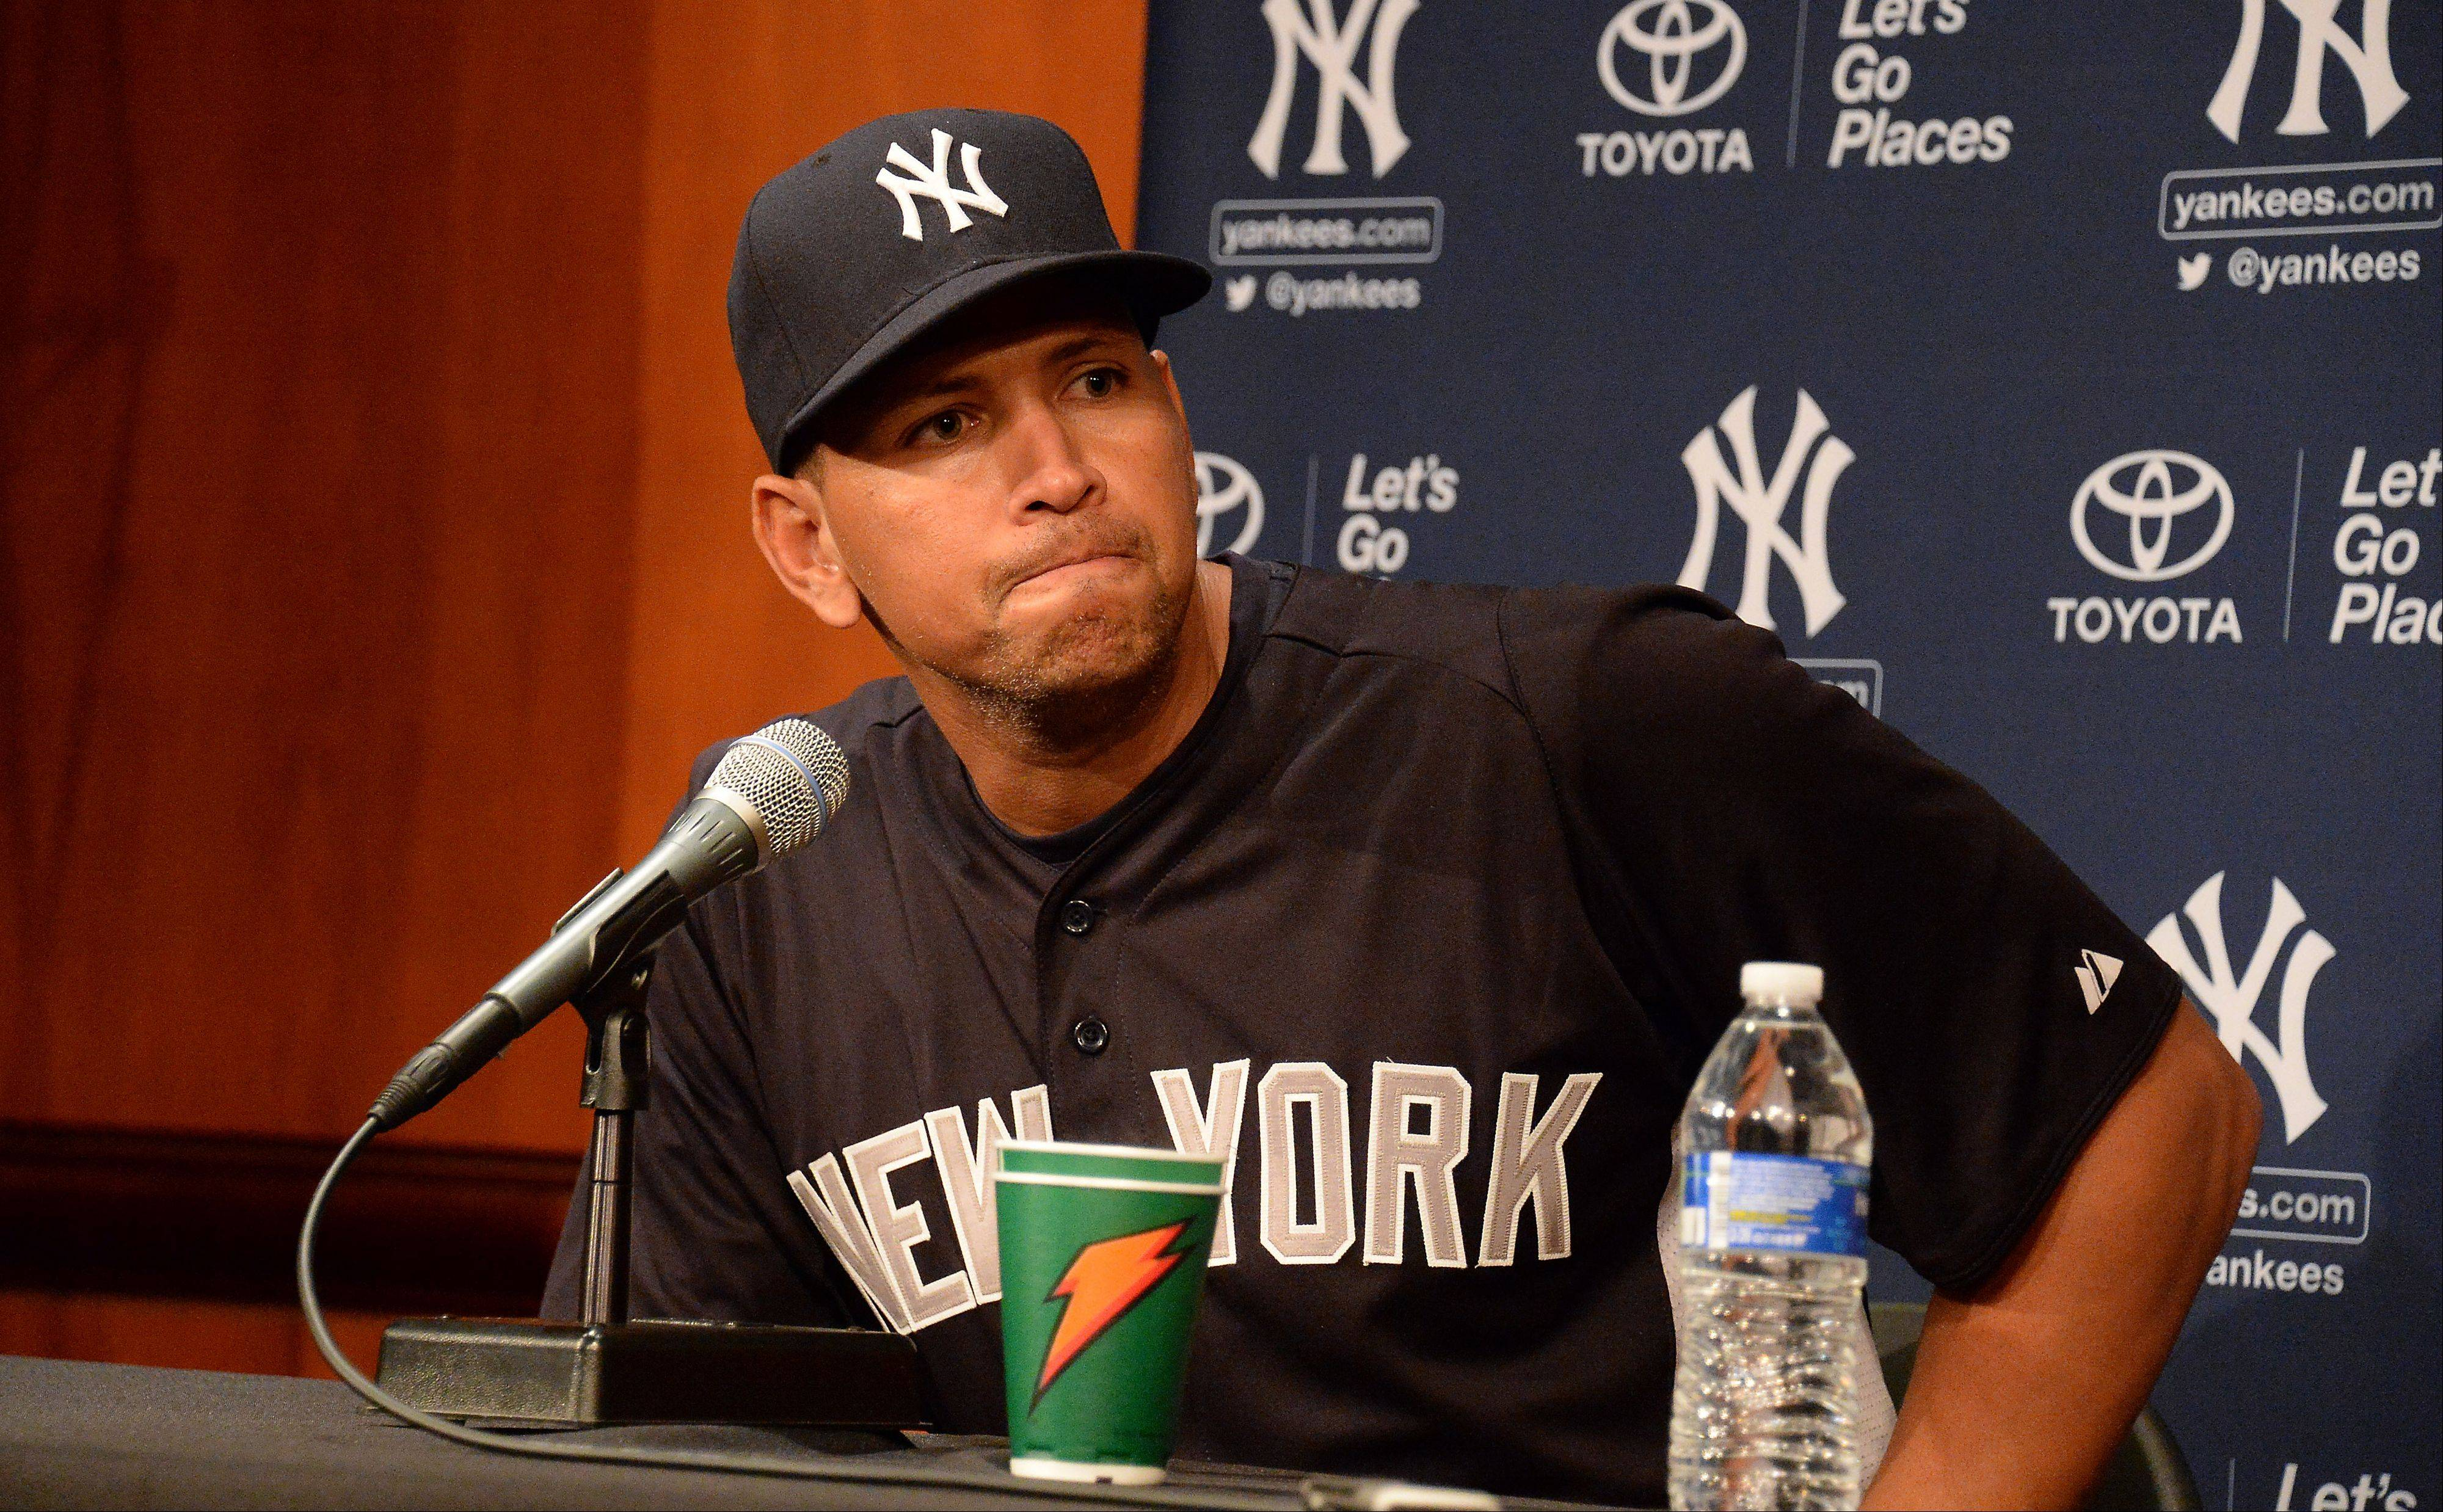 New York Yankees superstar Alex Rodriguez answers tough questions from the media Monday at U.S. Cellular Field in Chicago.